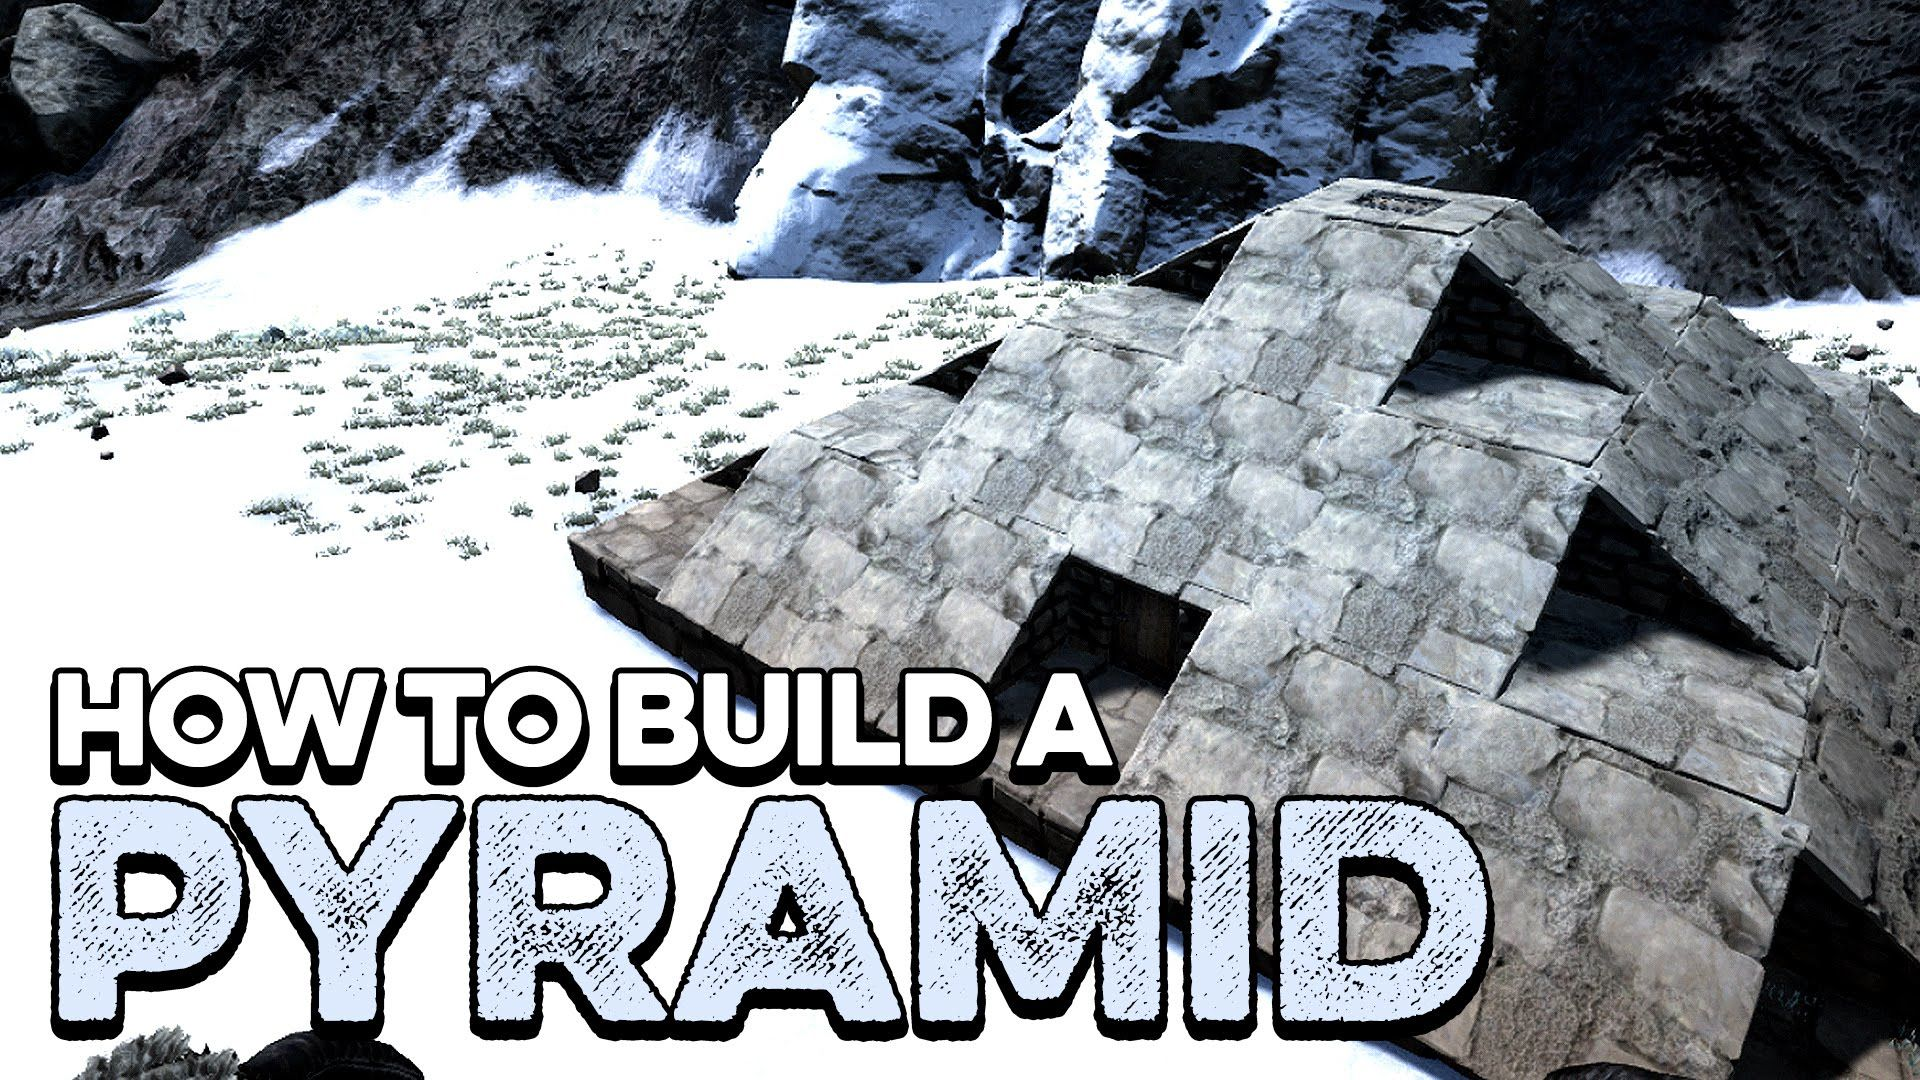 How to build a pyramid base ark survival evolved tutorial guide how to build a pyramid base ark survival evolved tutorial guide youtube gaming pinterest malvernweather Images